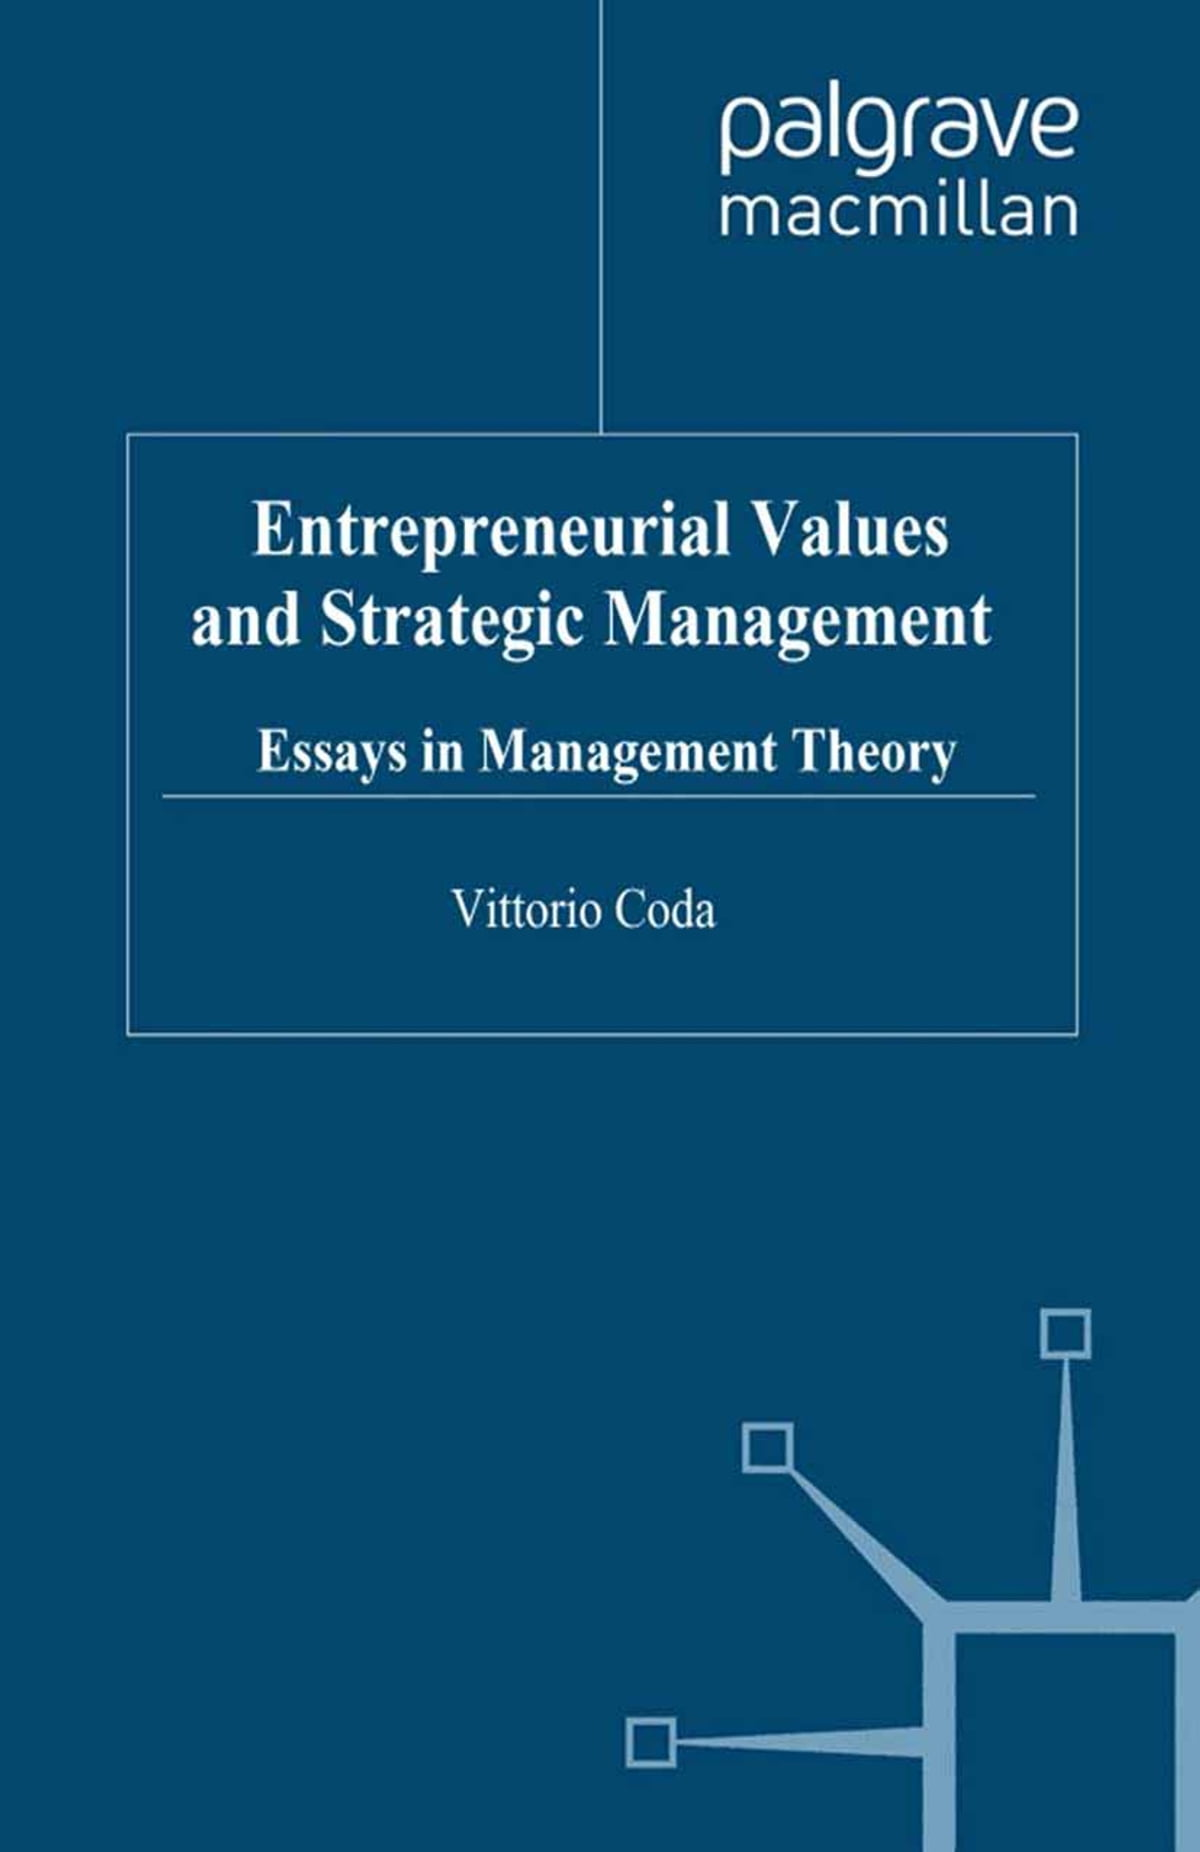 Examples Of English Essays Entrepreneurial Values And Strategic Management Ebook By V Coda     Rakuten Kobo Essay About Science And Technology also Corruption Essay In English Entrepreneurial Values And Strategic Management Ebook By V Coda  Thesis For Persuasive Essay